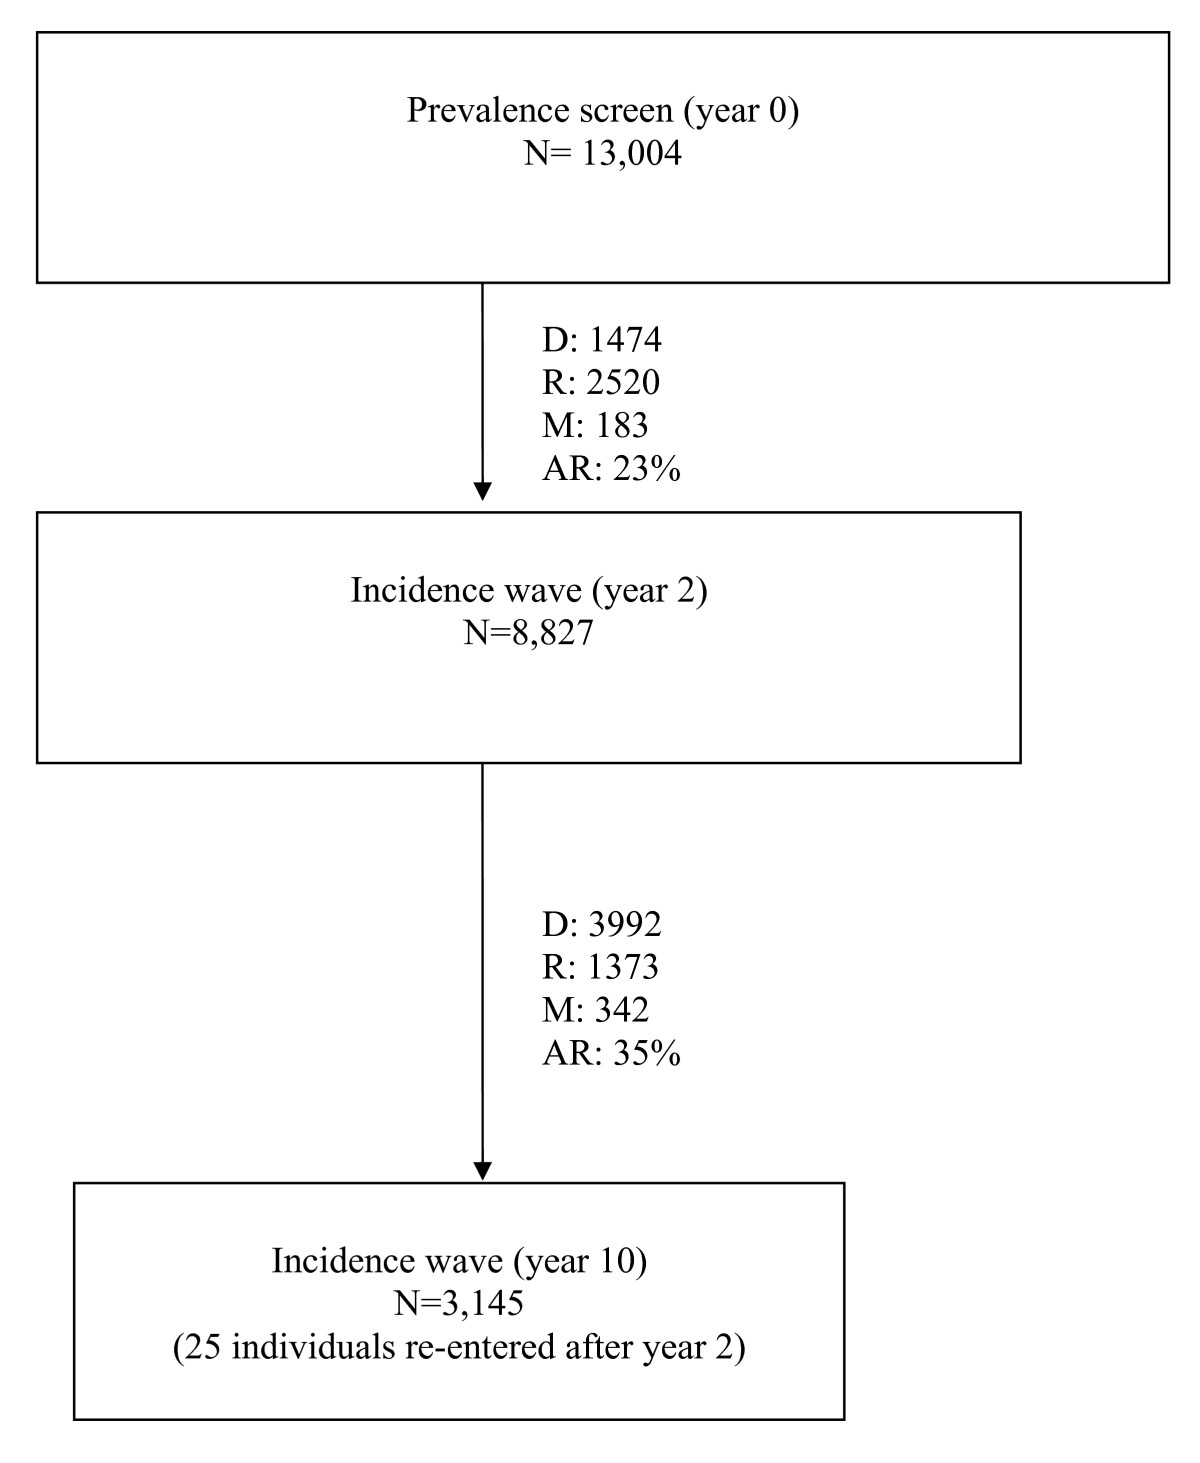 https://static-content.springer.com/image/art%3A10.1186%2F1471-2458-6-185/MediaObjects/12889_2006_Article_482_Fig2_HTML.jpg